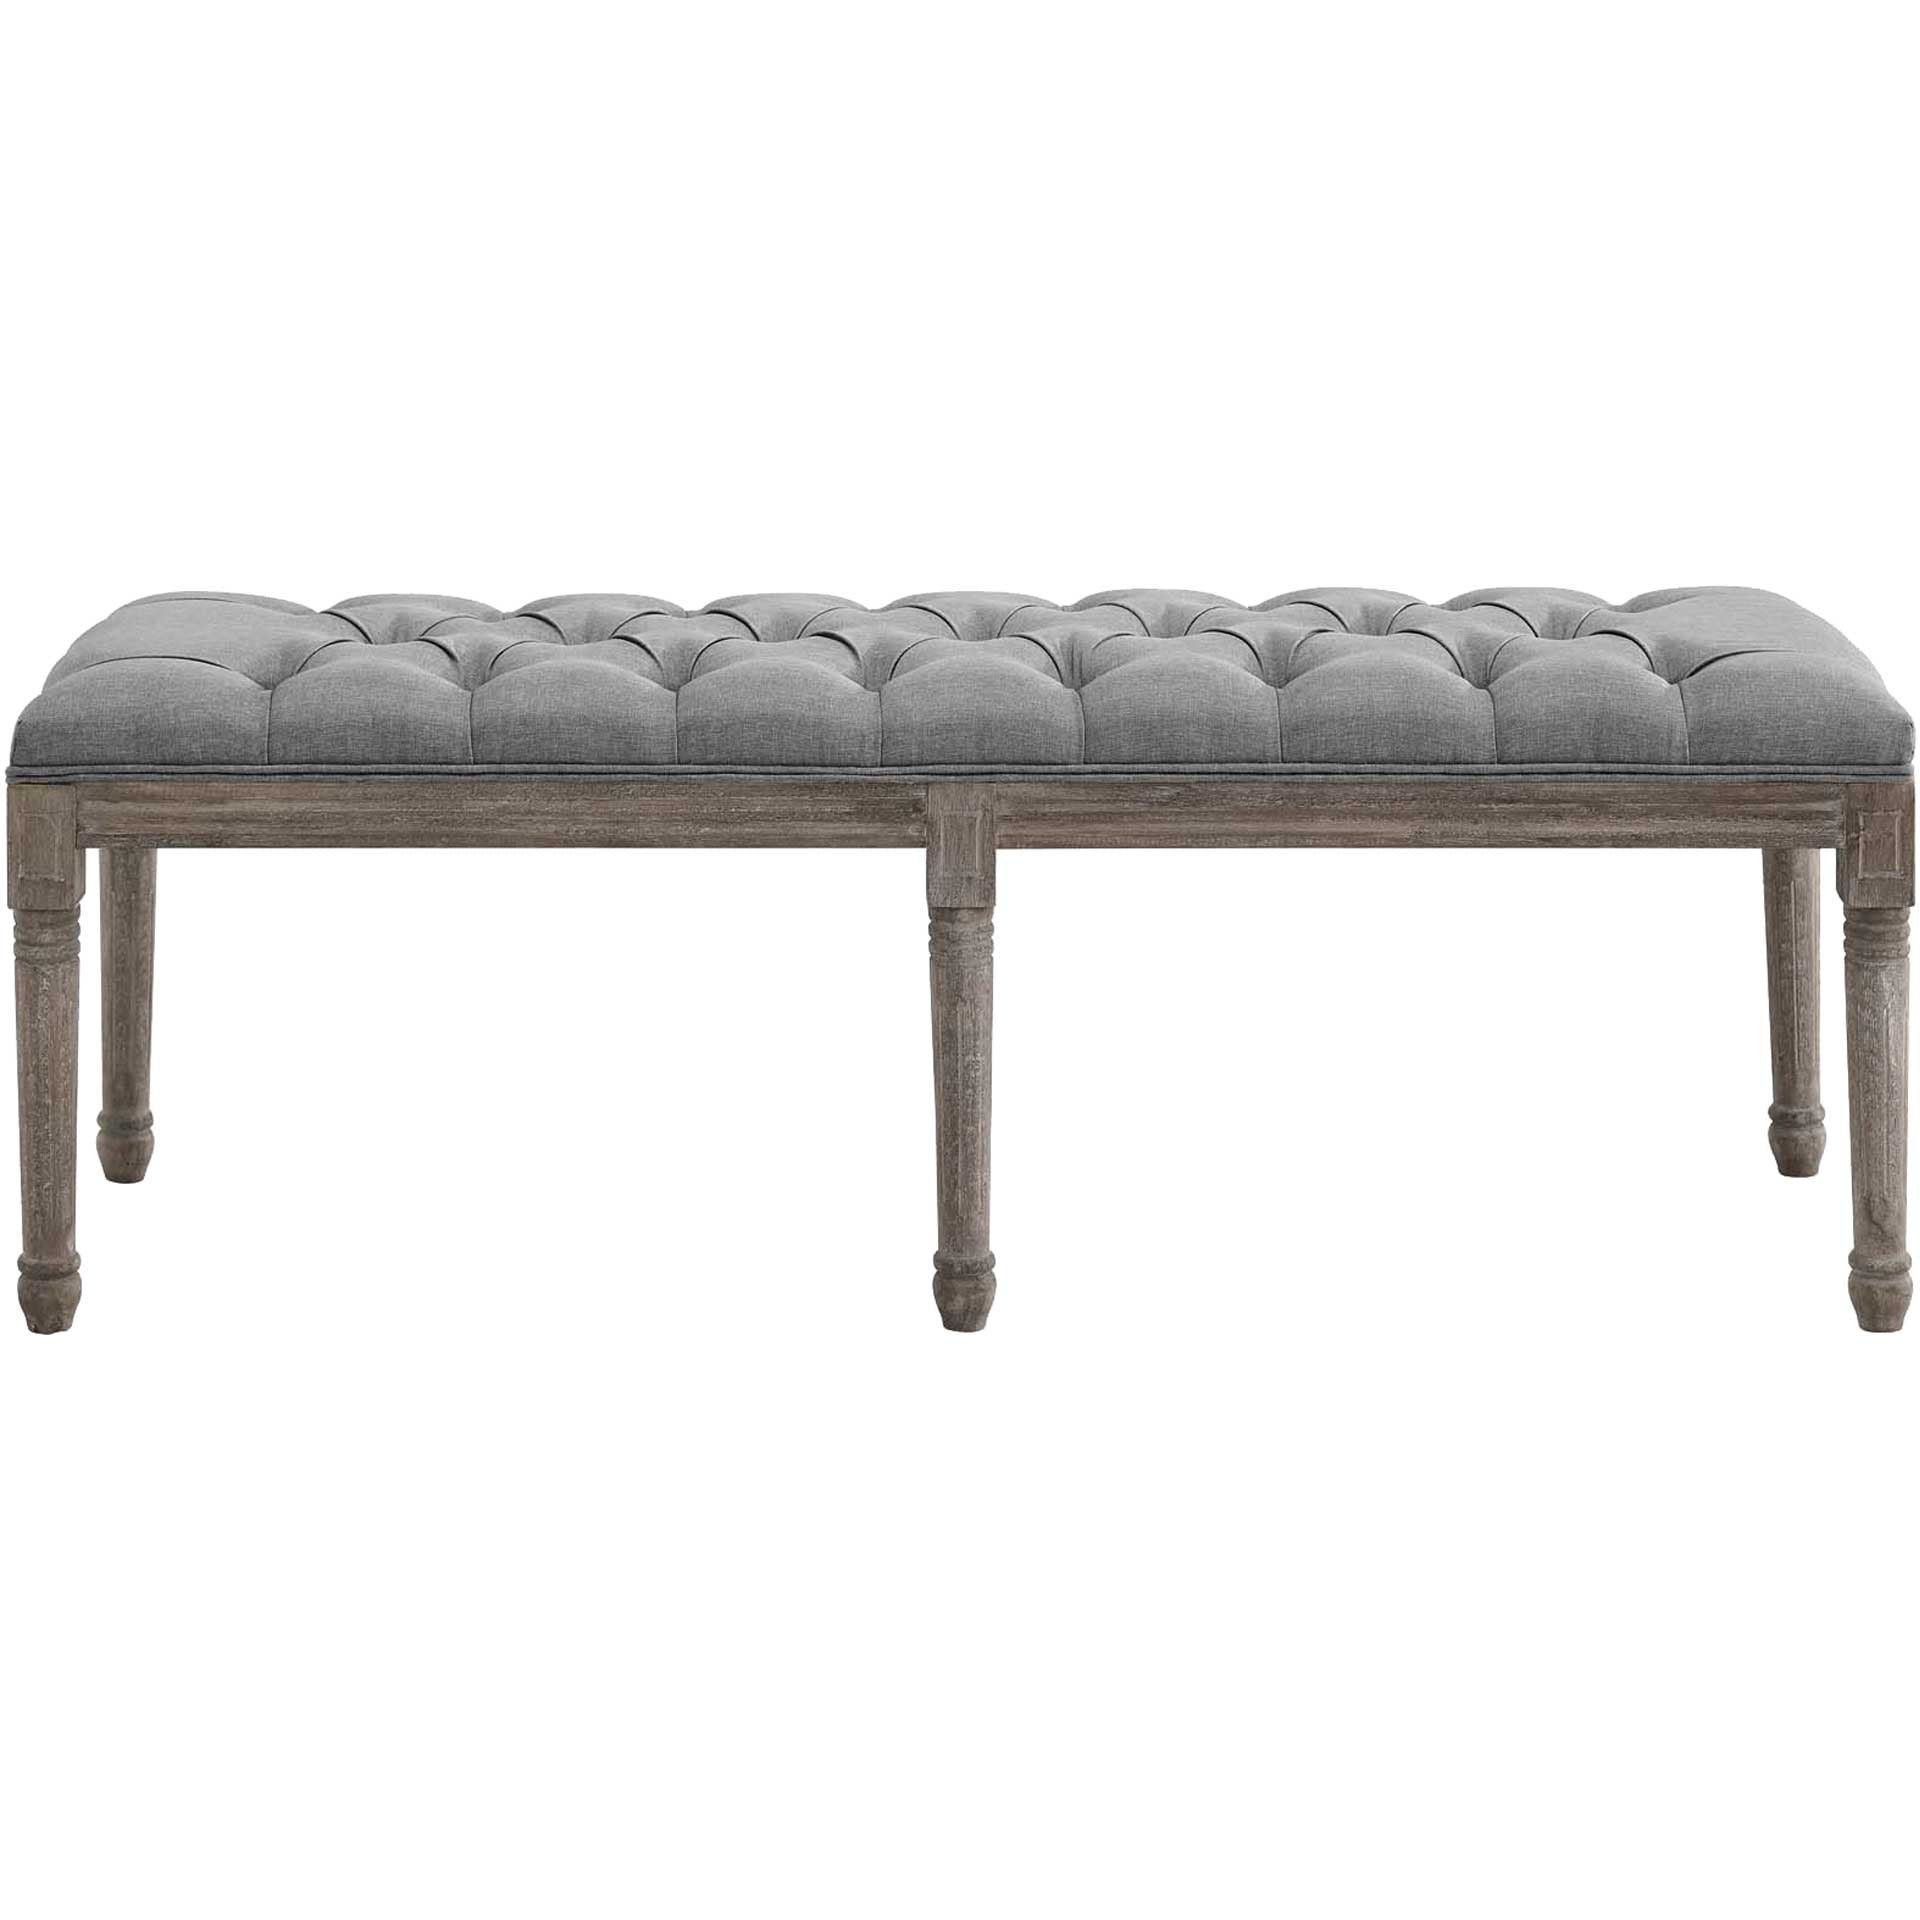 Park Upholstered Fabric Bench Light Gray